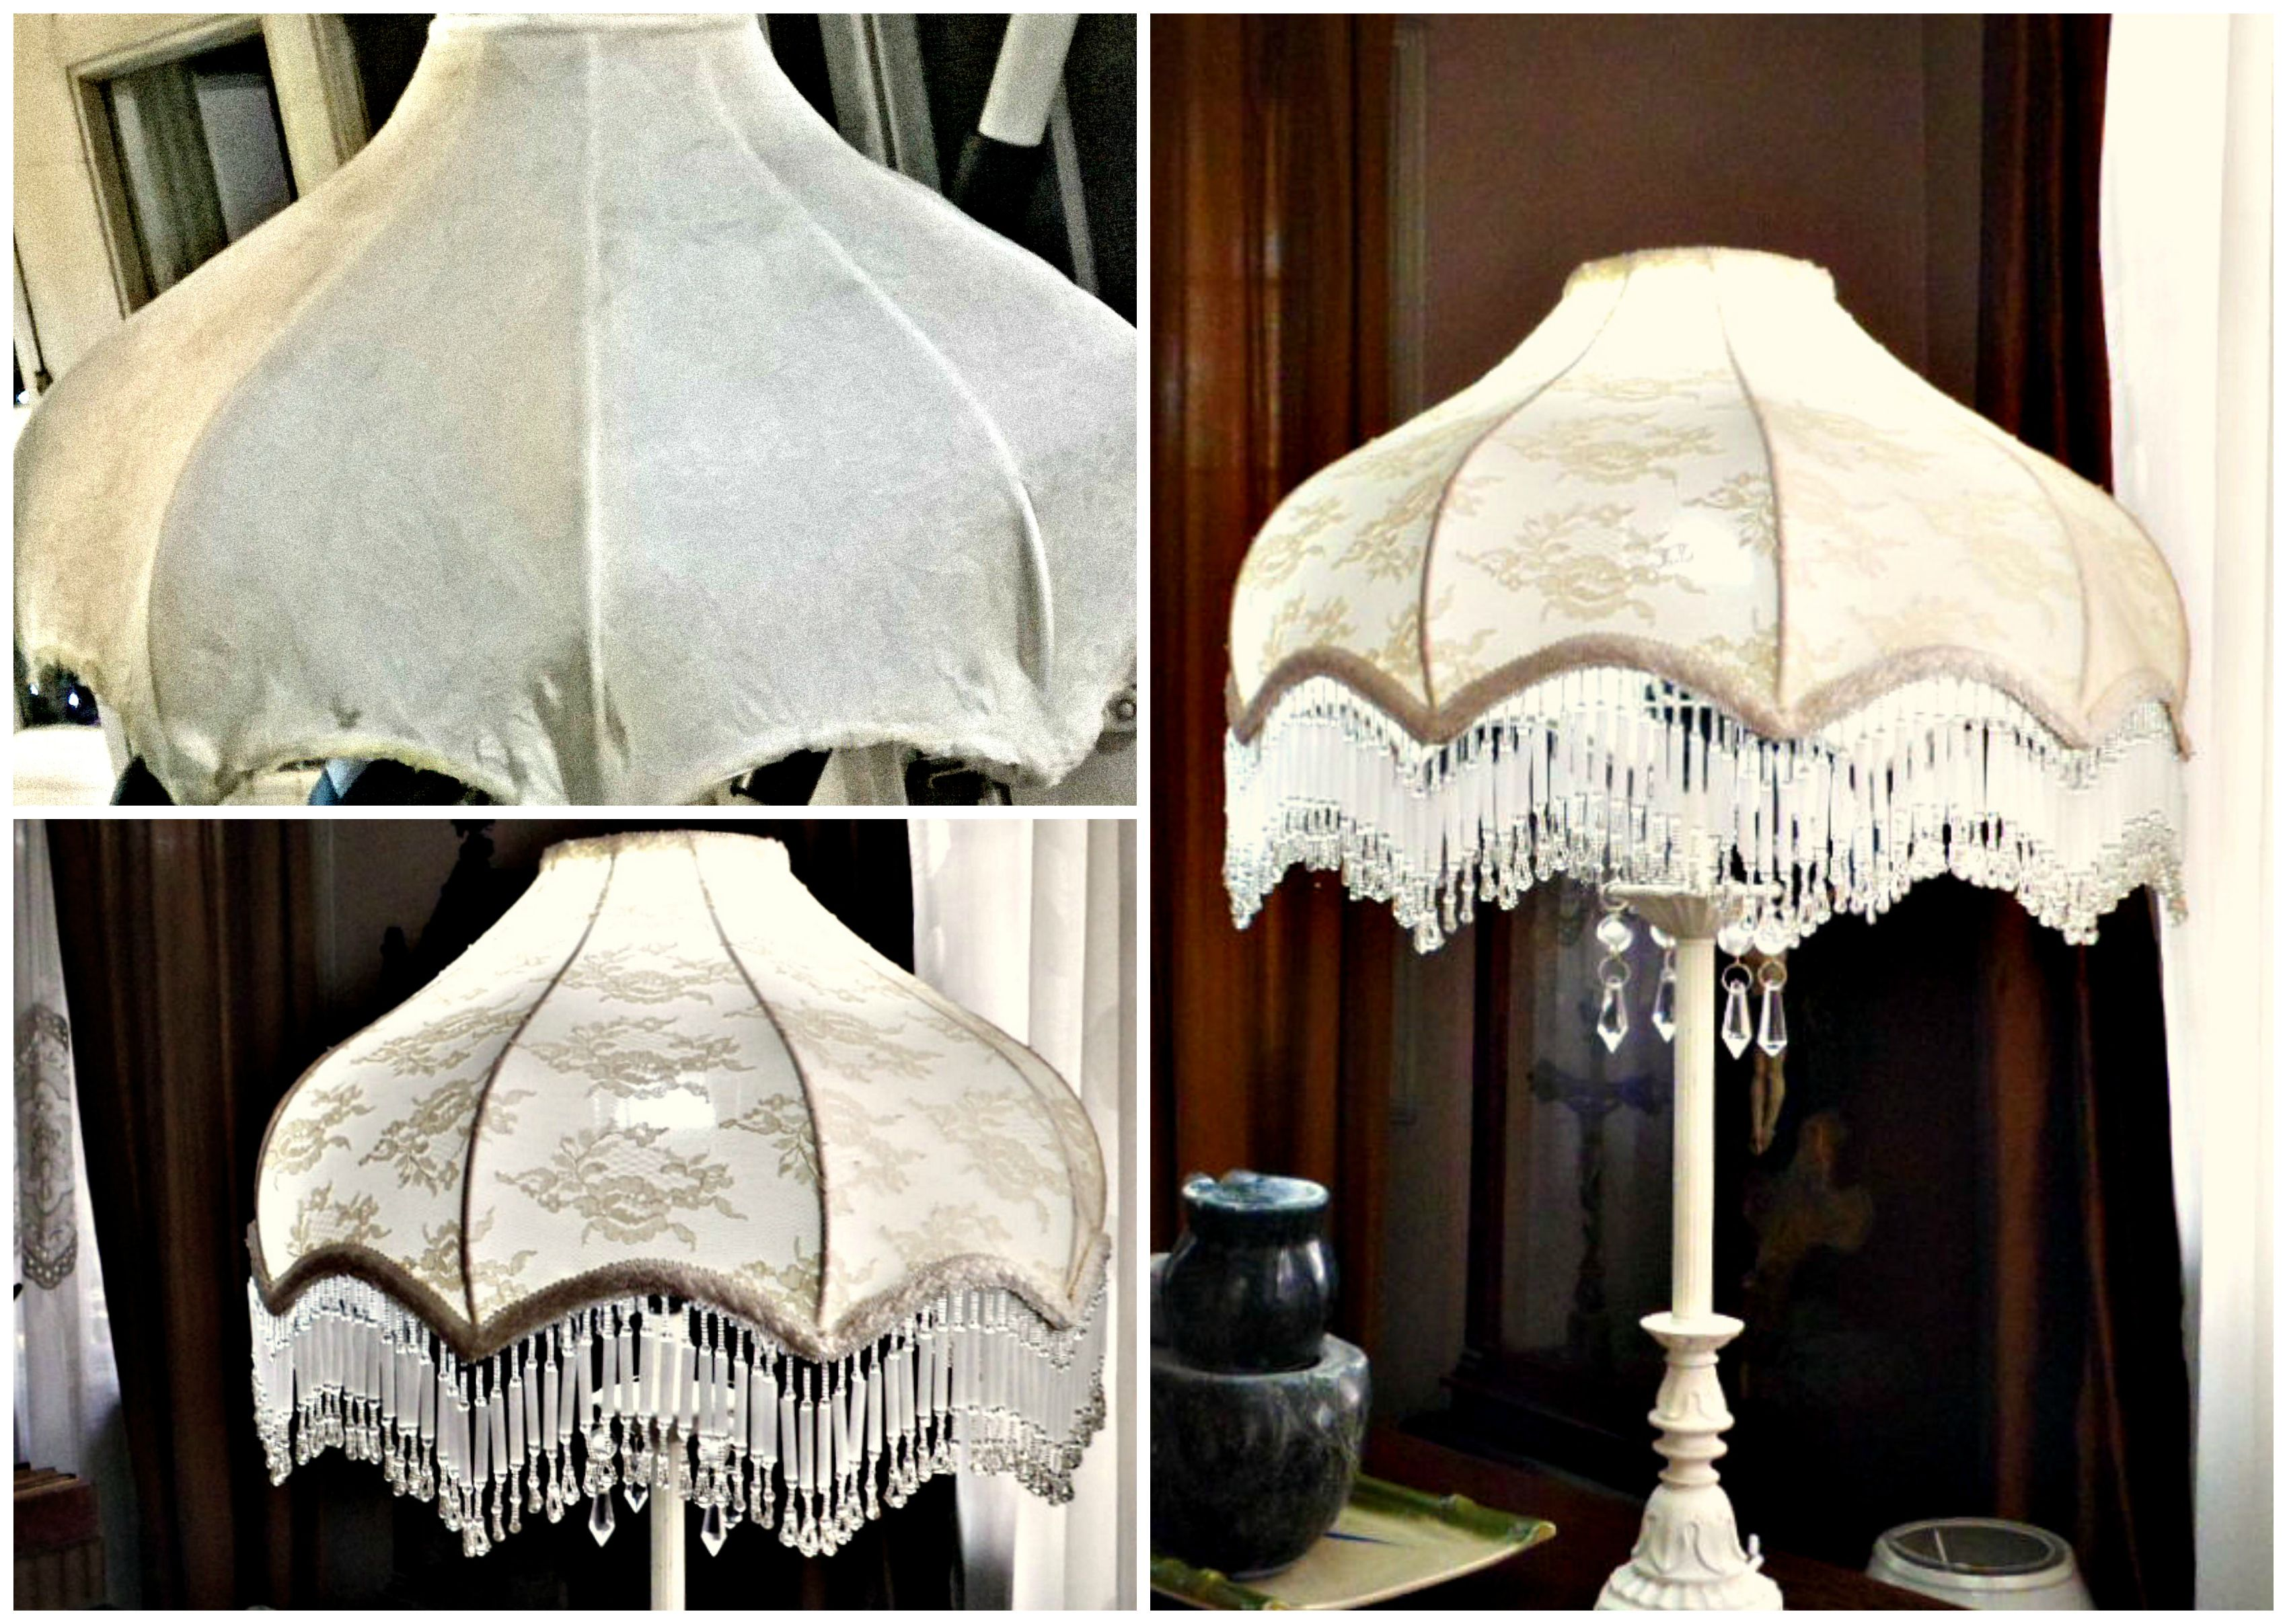 Victorian Lampshade Restored. This inverted scallop dome shade needed some fresh fabric and trim. The bead fringe is original to the shade. https://www.facebook.com/ivoirelampshades